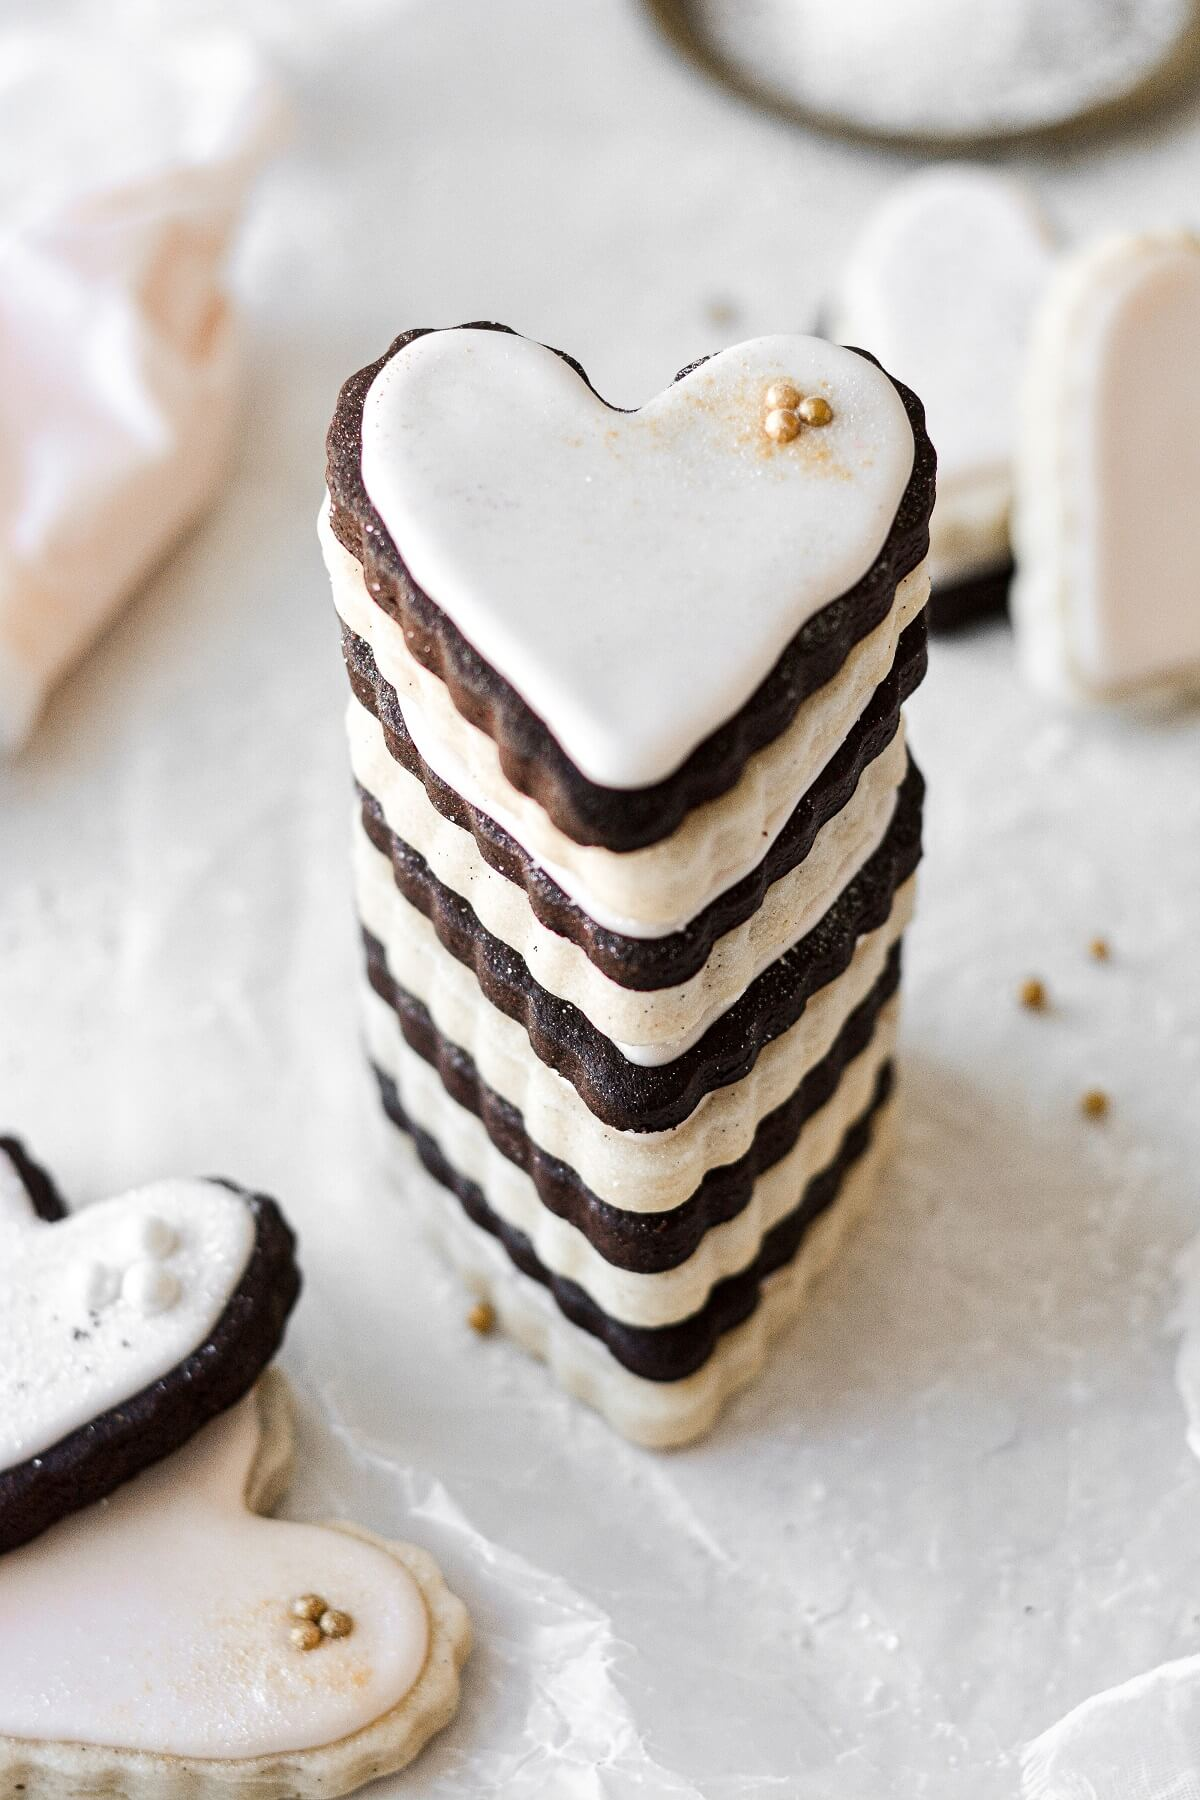 A stack of heart shaped chocolate and vanilla sugar cookies, frosted with pale pink royal icing.